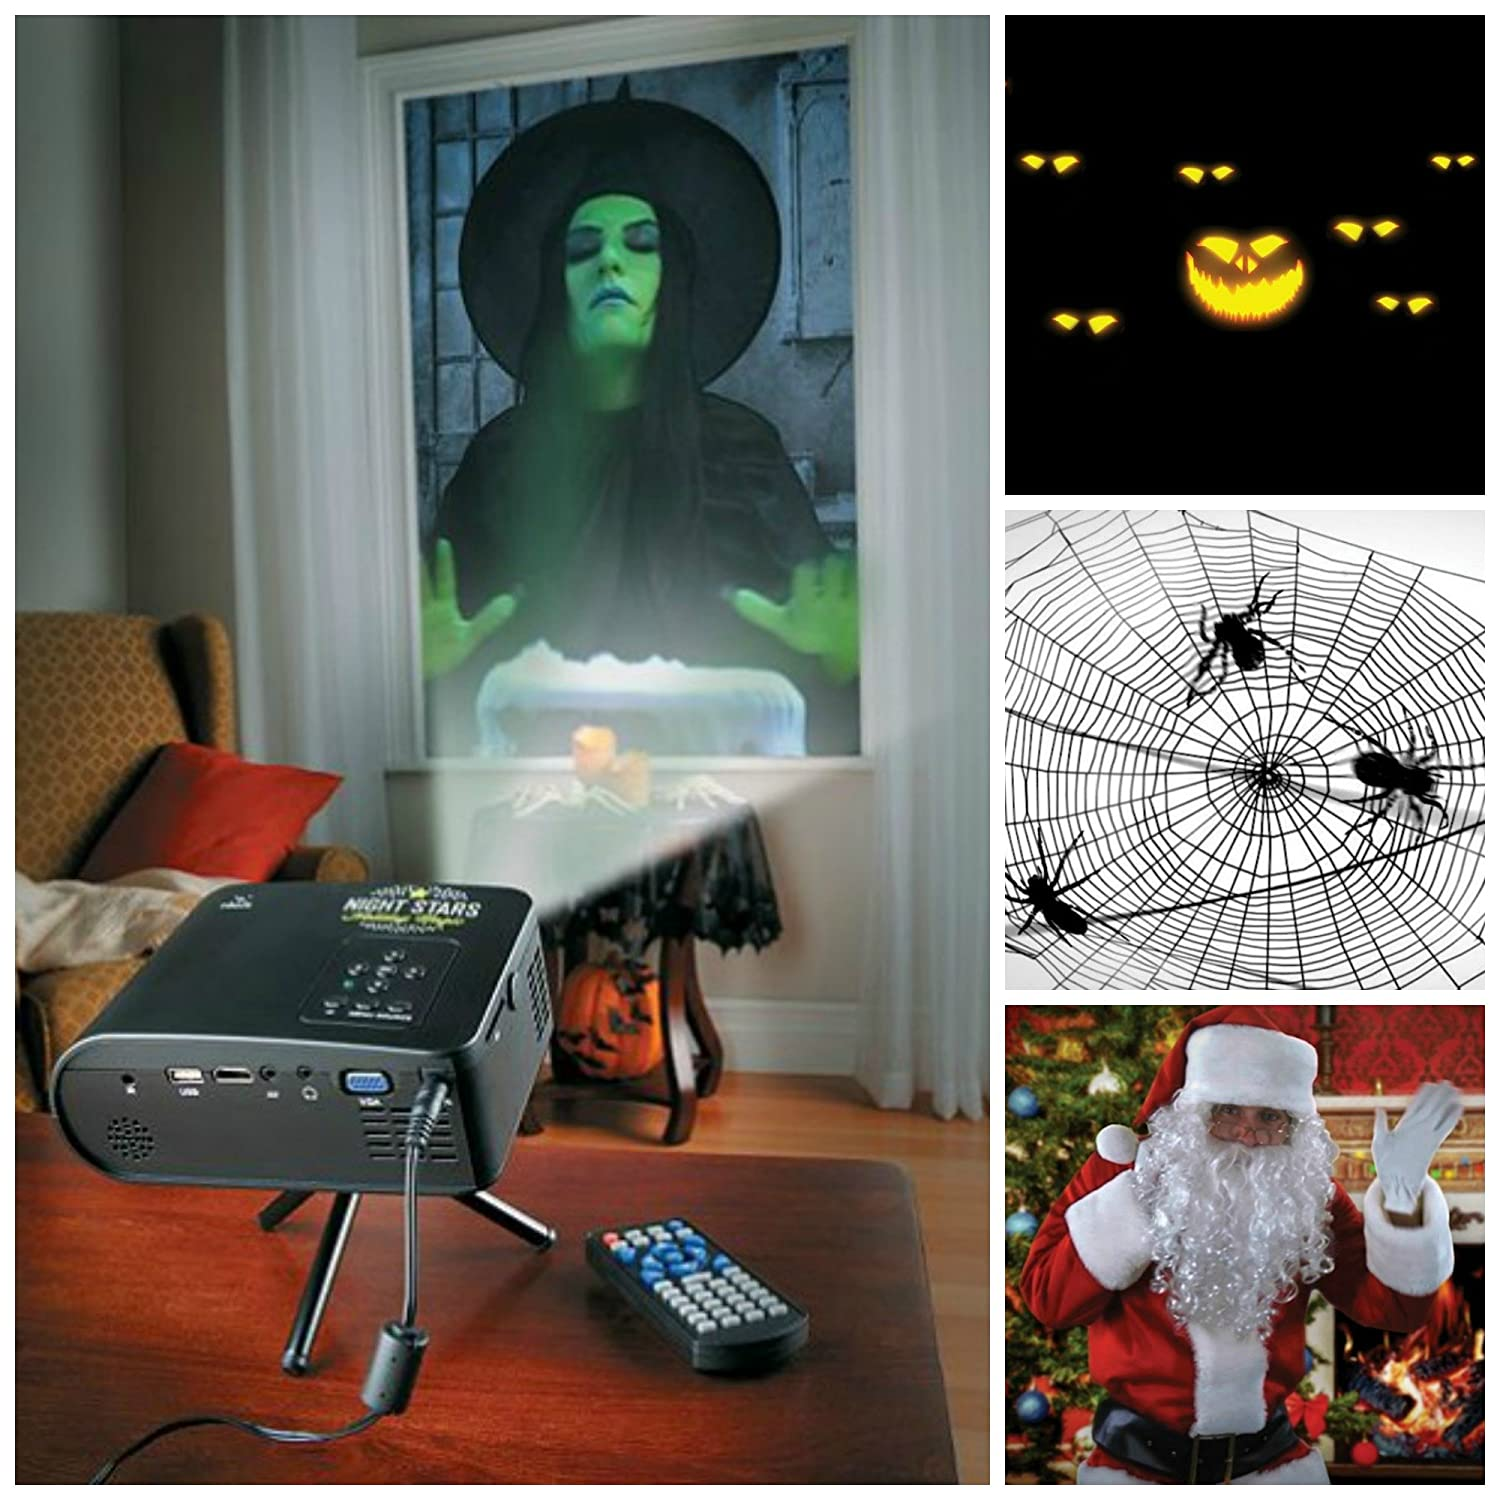 amazoncom virtual holiday animated projector kit for window or wall w12 scenes for halloween and christmas home kitchen